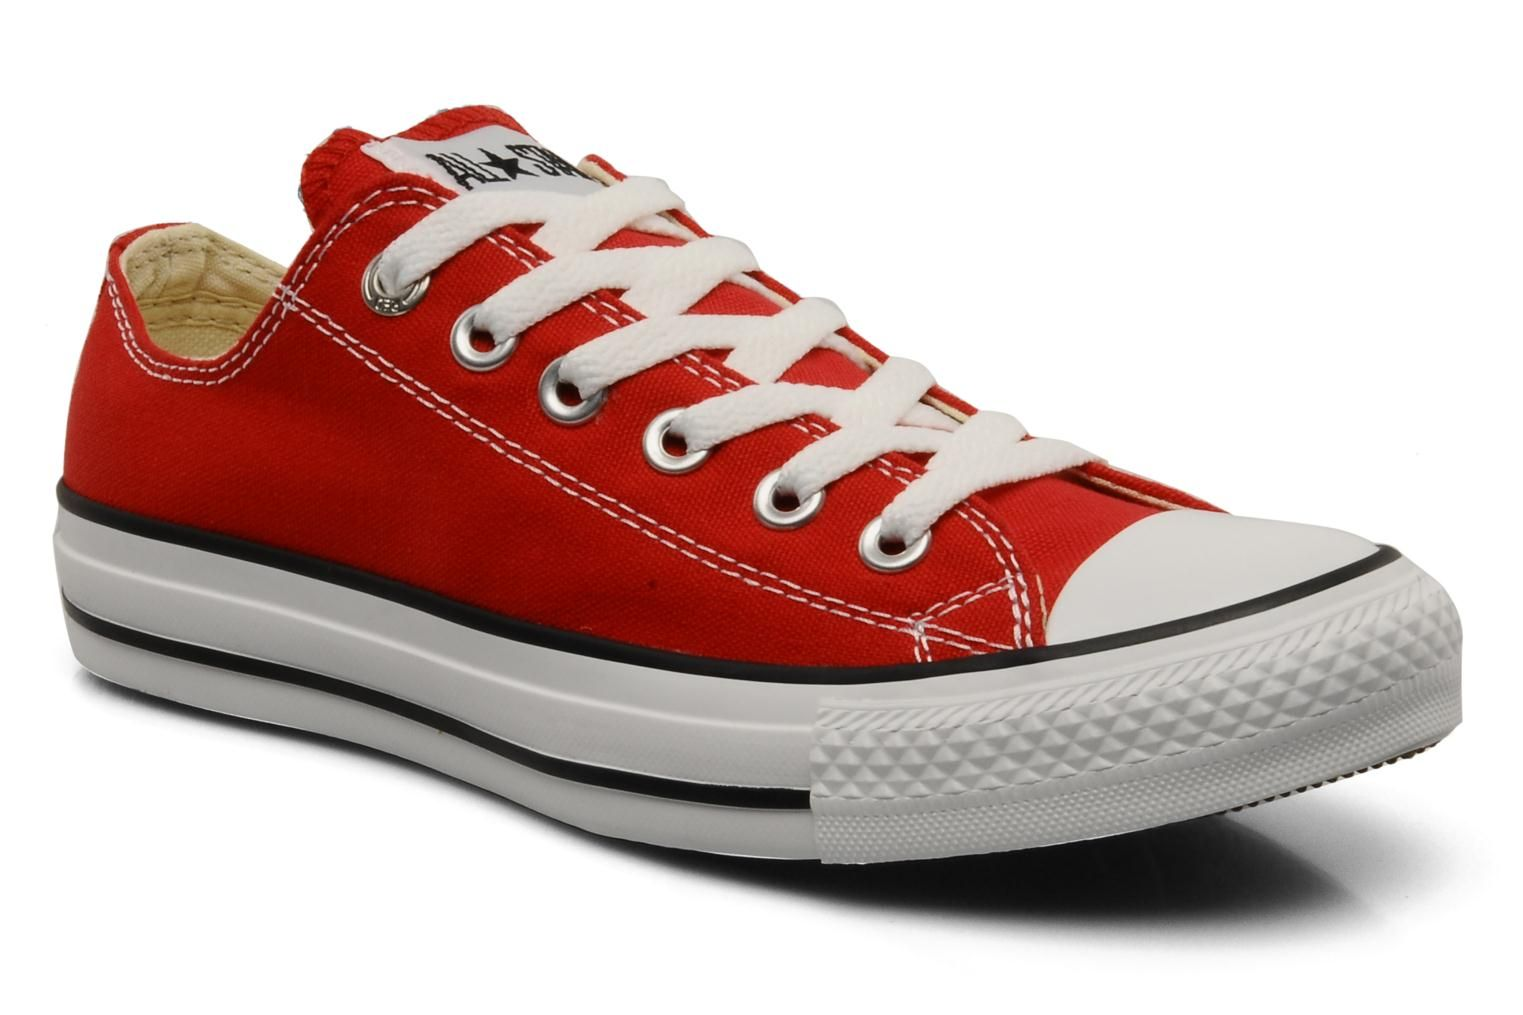 Converse Chuck Taylor All Star Ox W Trainers Color: Red